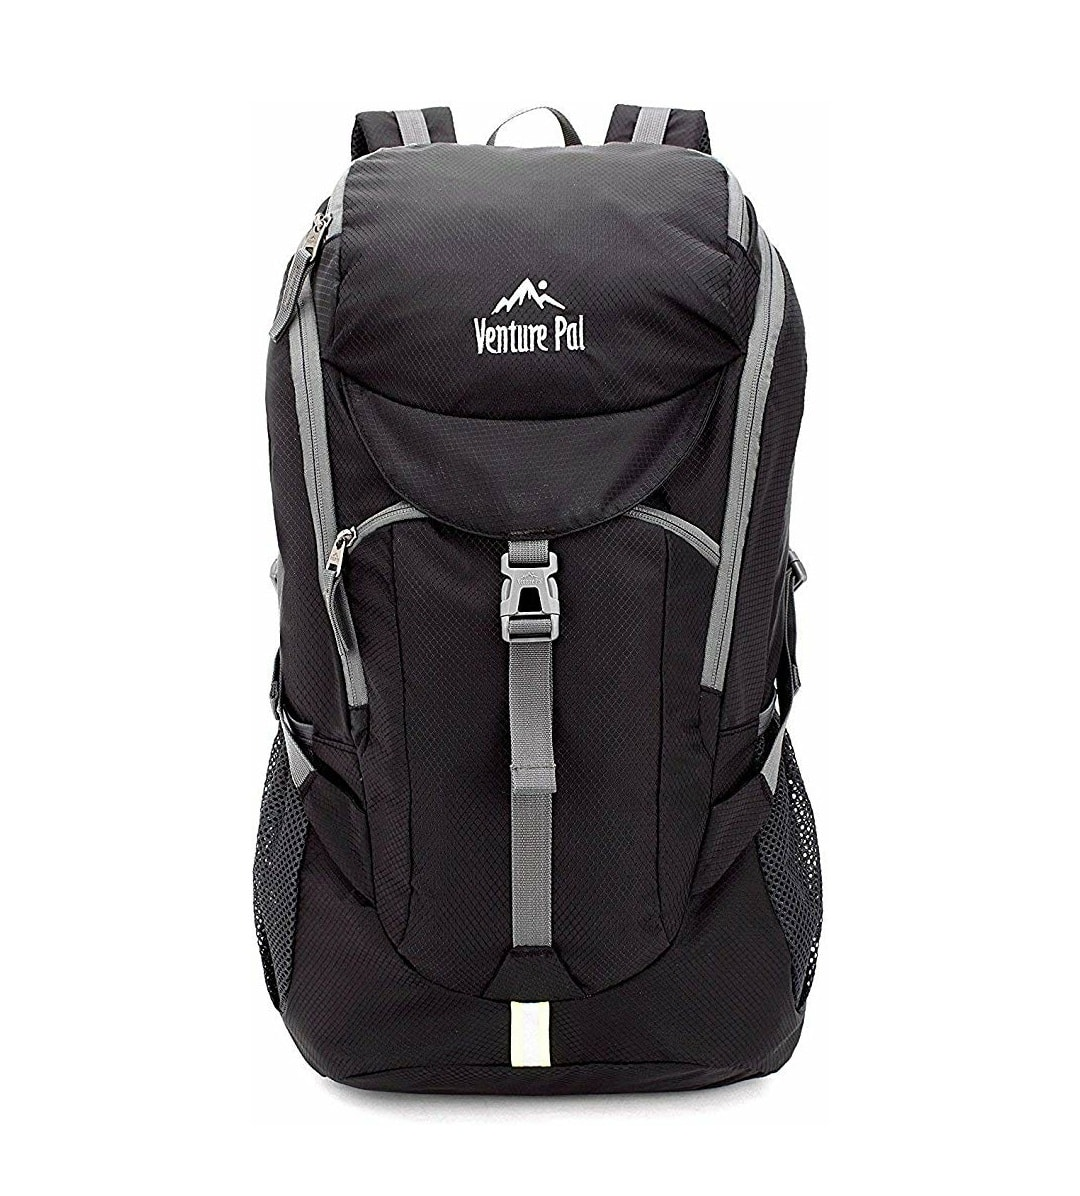 Venture Pal Large Hiking Backpack - Packable Durable Lightweight Travel Backpack Daypack $11.49